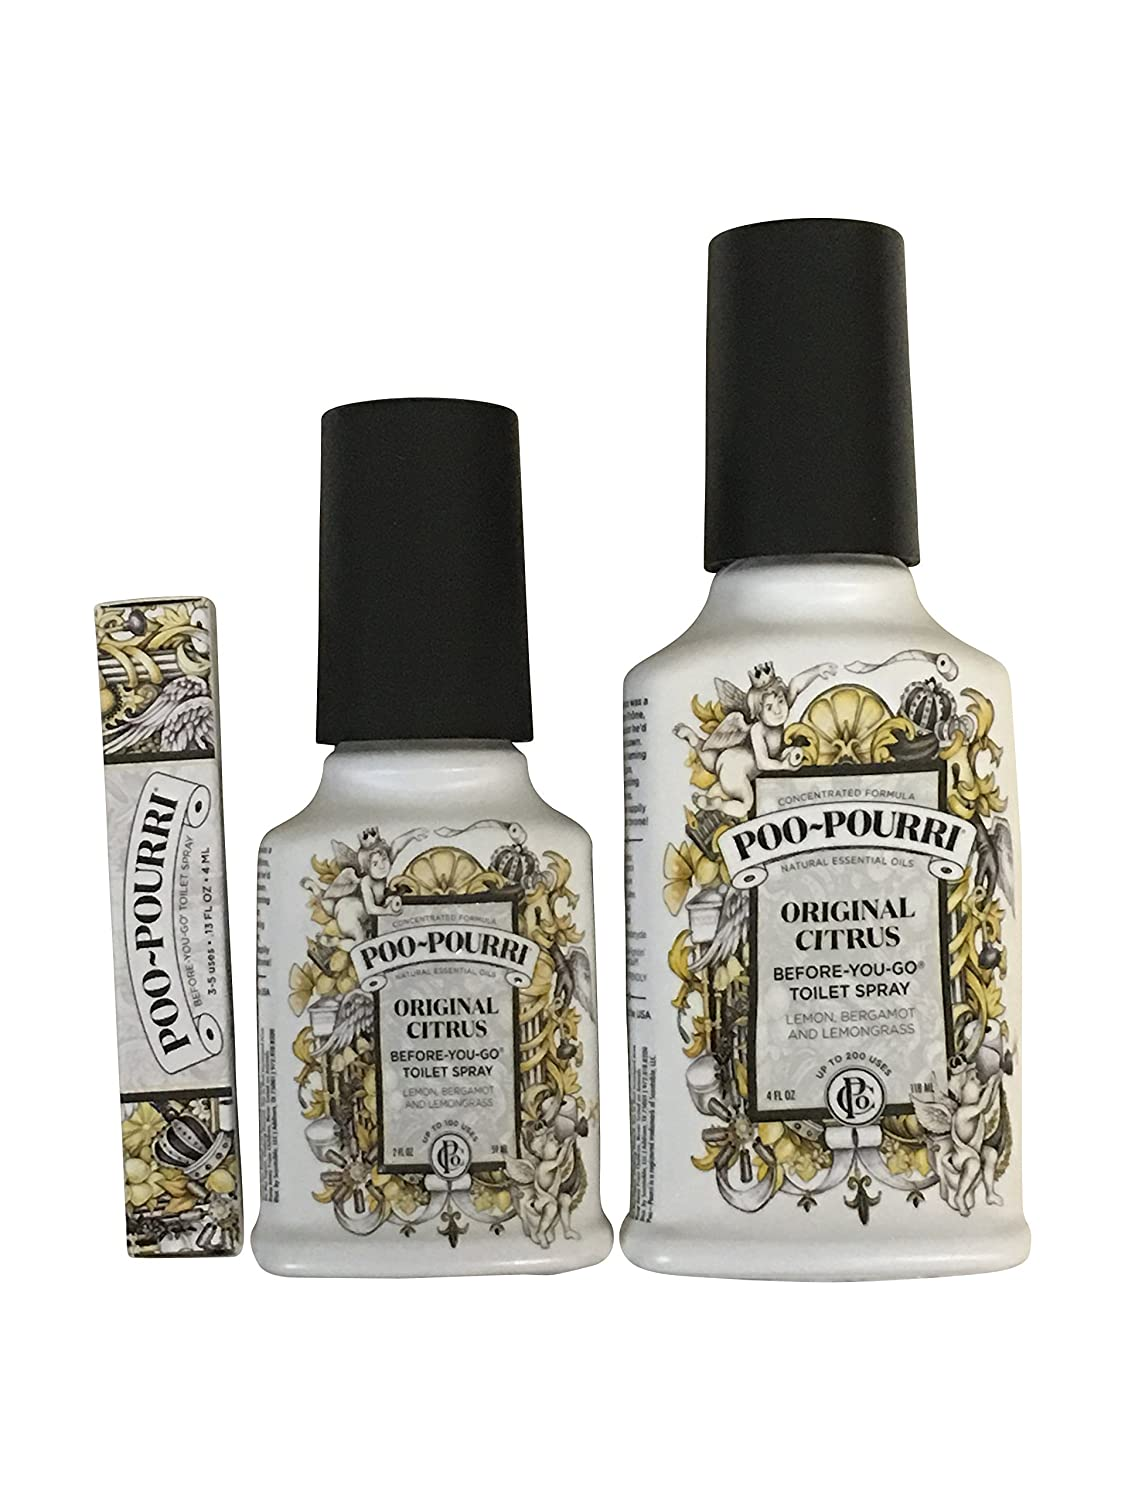 Poo-Pourri 3-piece Bathroom Deodorizer Set - Vanilla Mint SYNCHKG100543